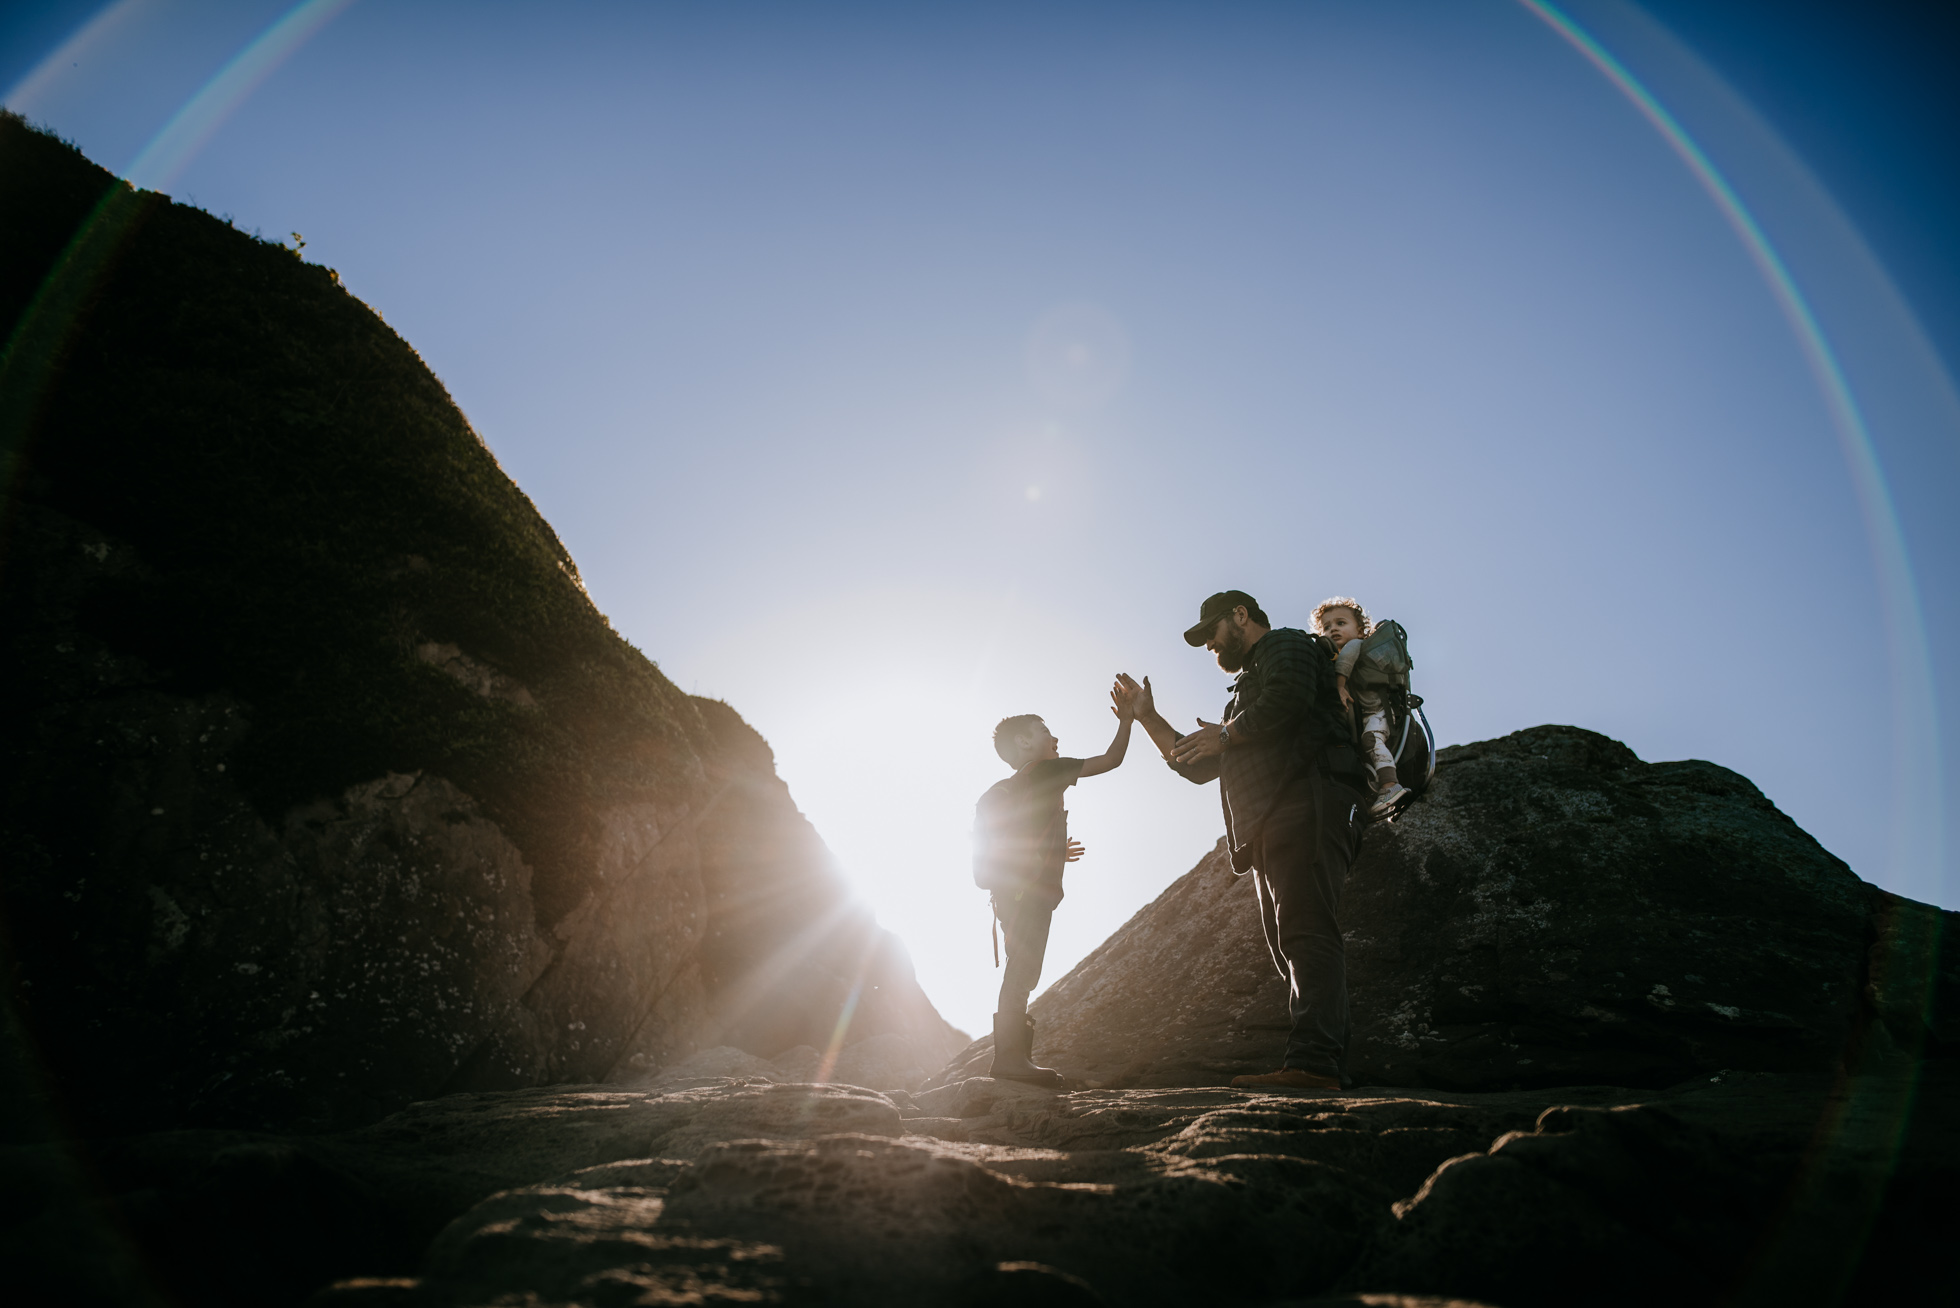 Boys and their father playing at the top of a rock on the Washington coast at sunset.